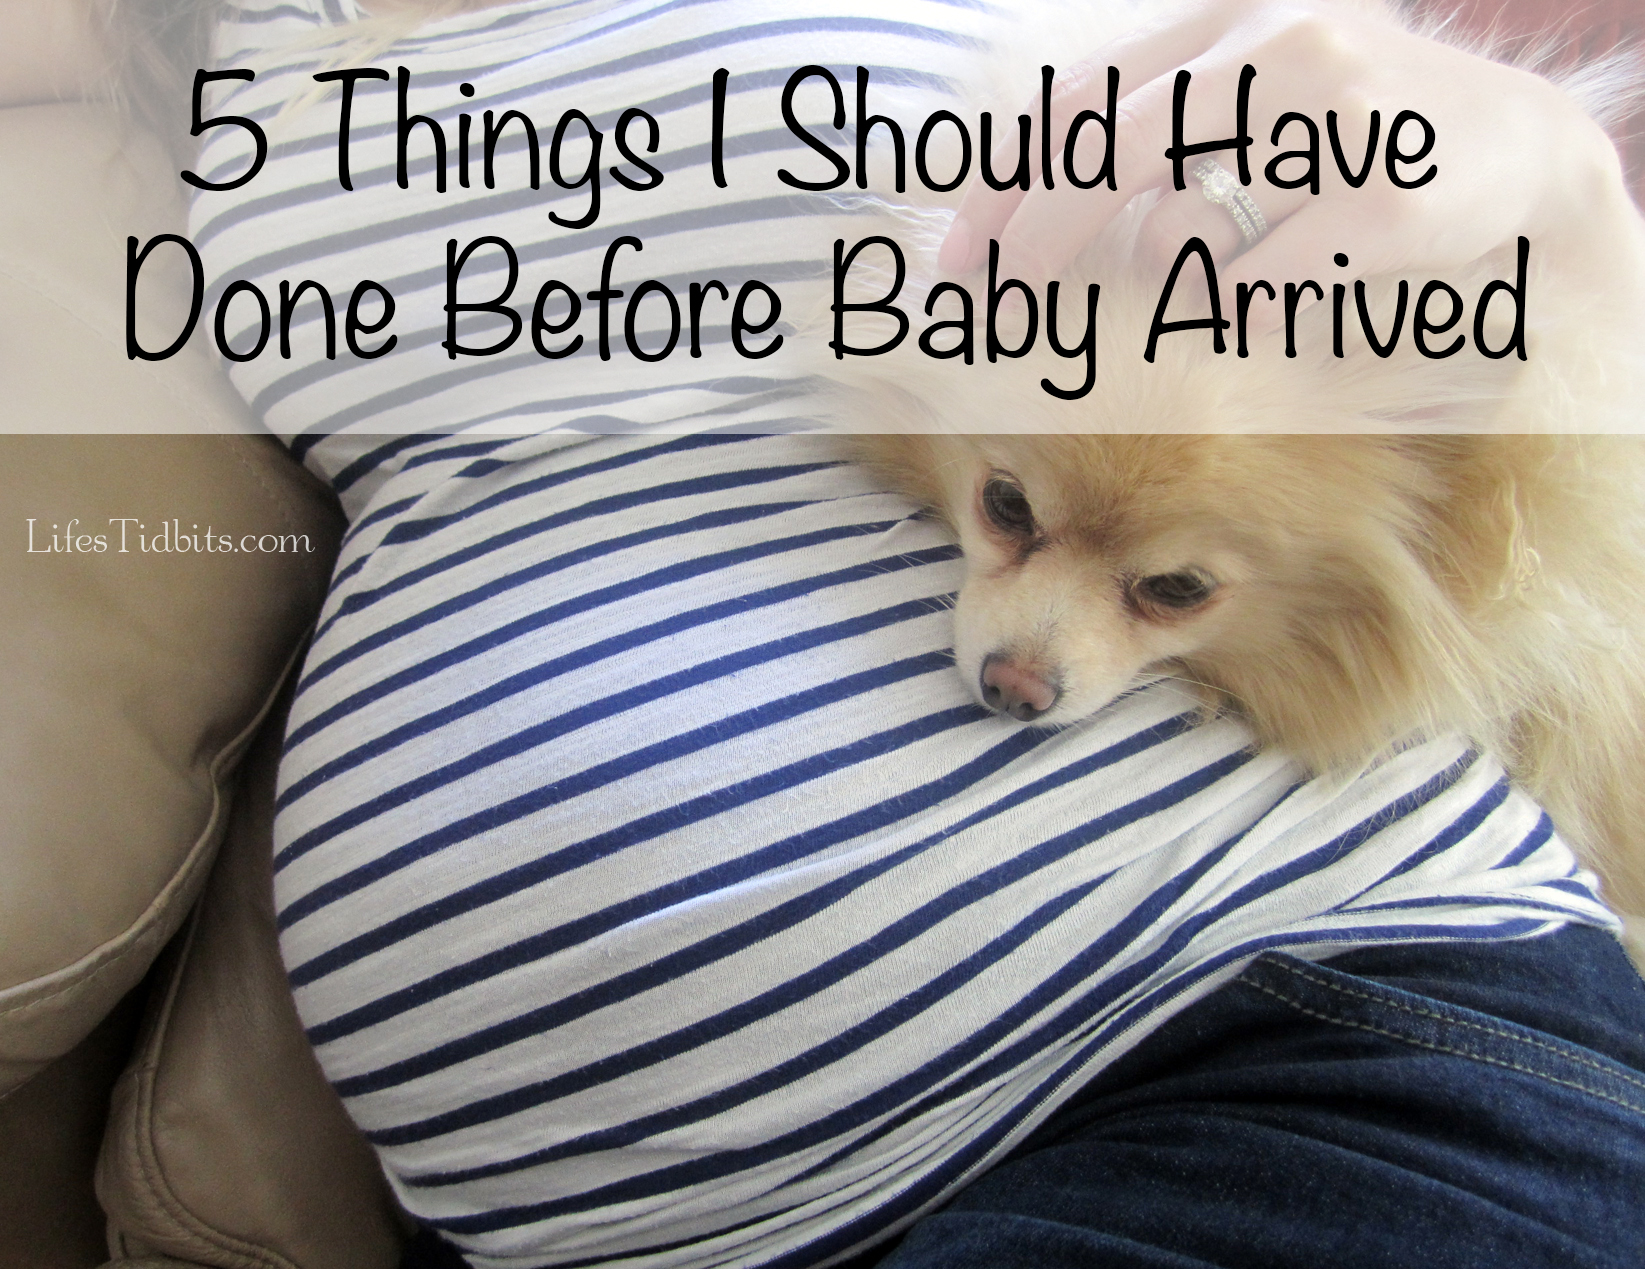 5 Things I Should Have Done Before Baby Arrived | Life's Tidbits